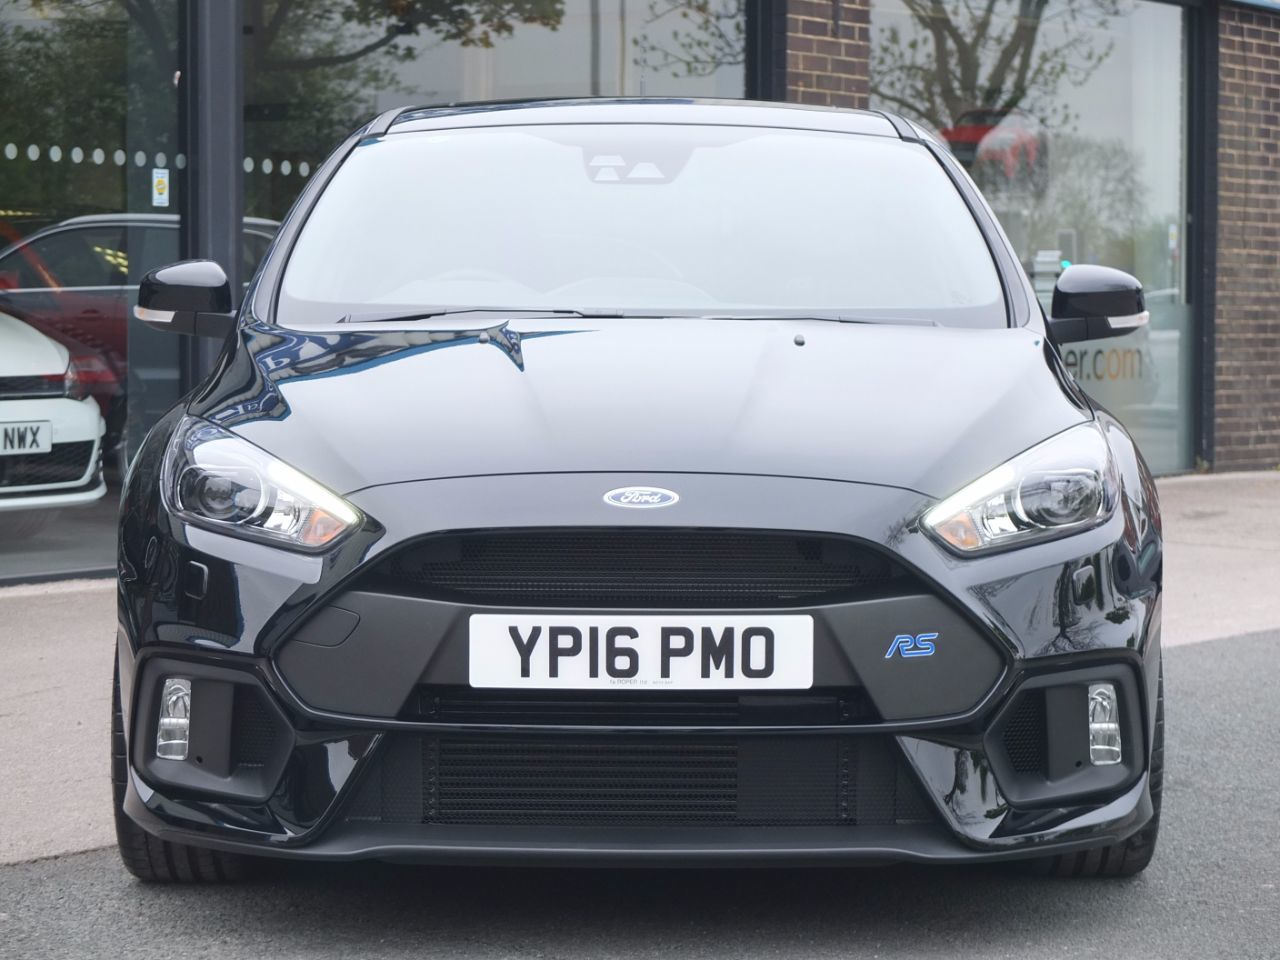 Ford Focus Rs 2.3 EcoBoost RS Lux Pack +++Spec Hatchback Petrol Shadow Black Mica